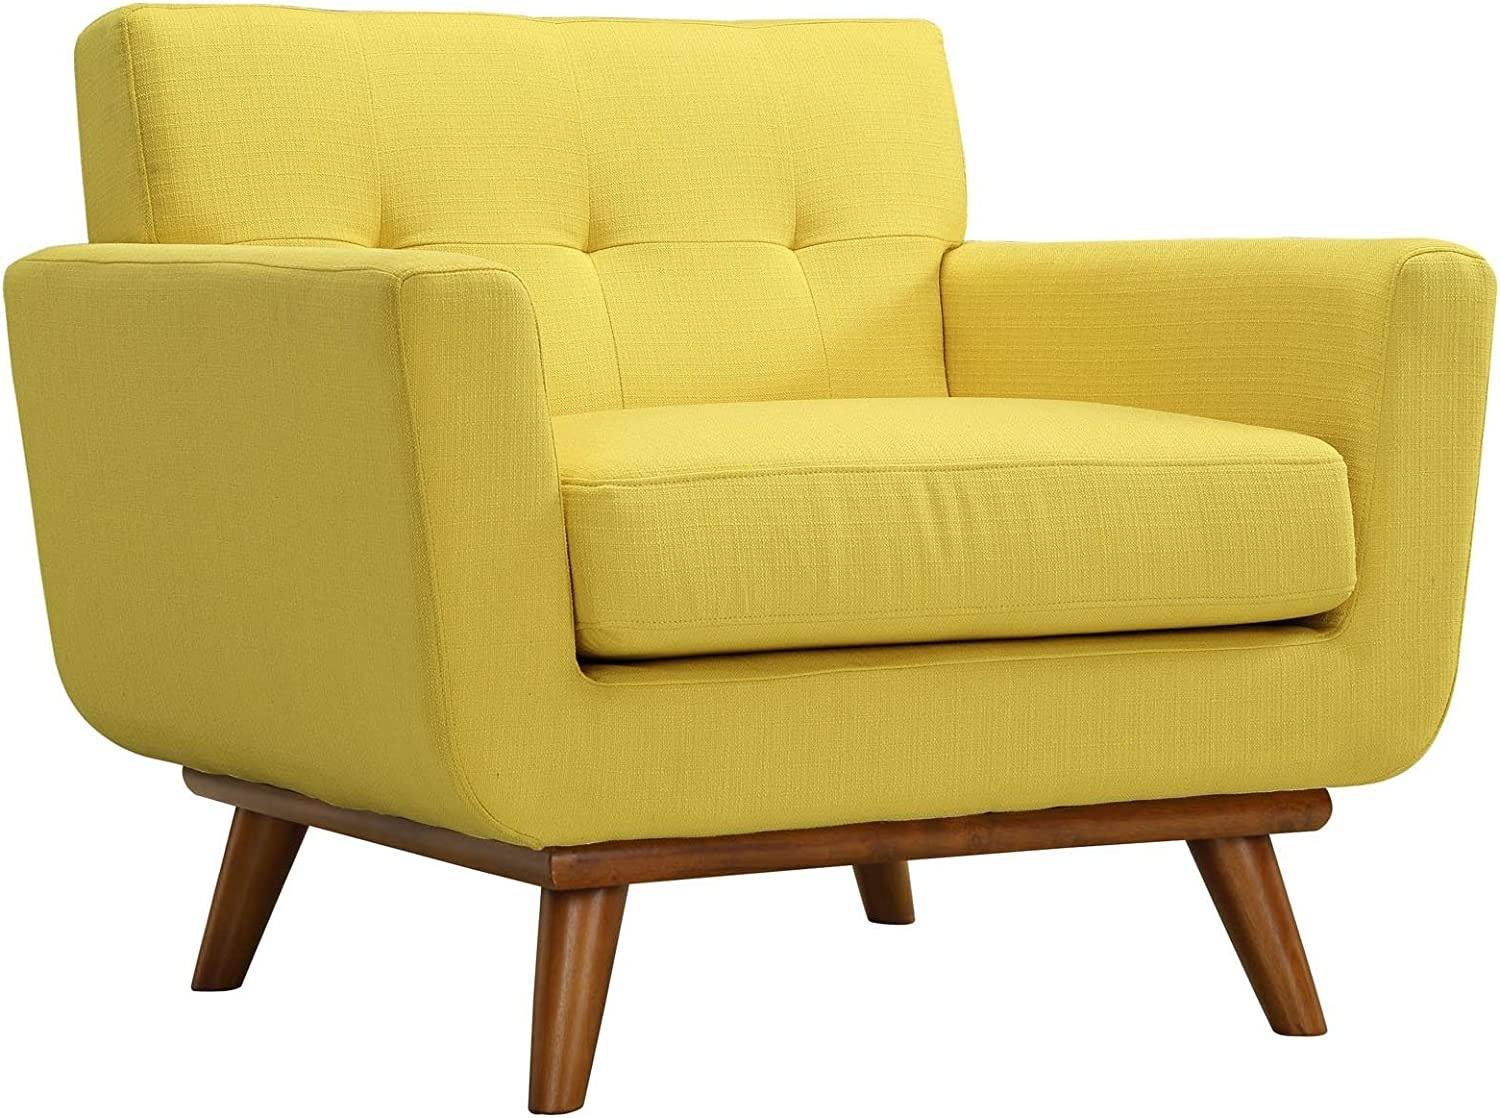 Modway Engage Upholstered Armchair in Sunny